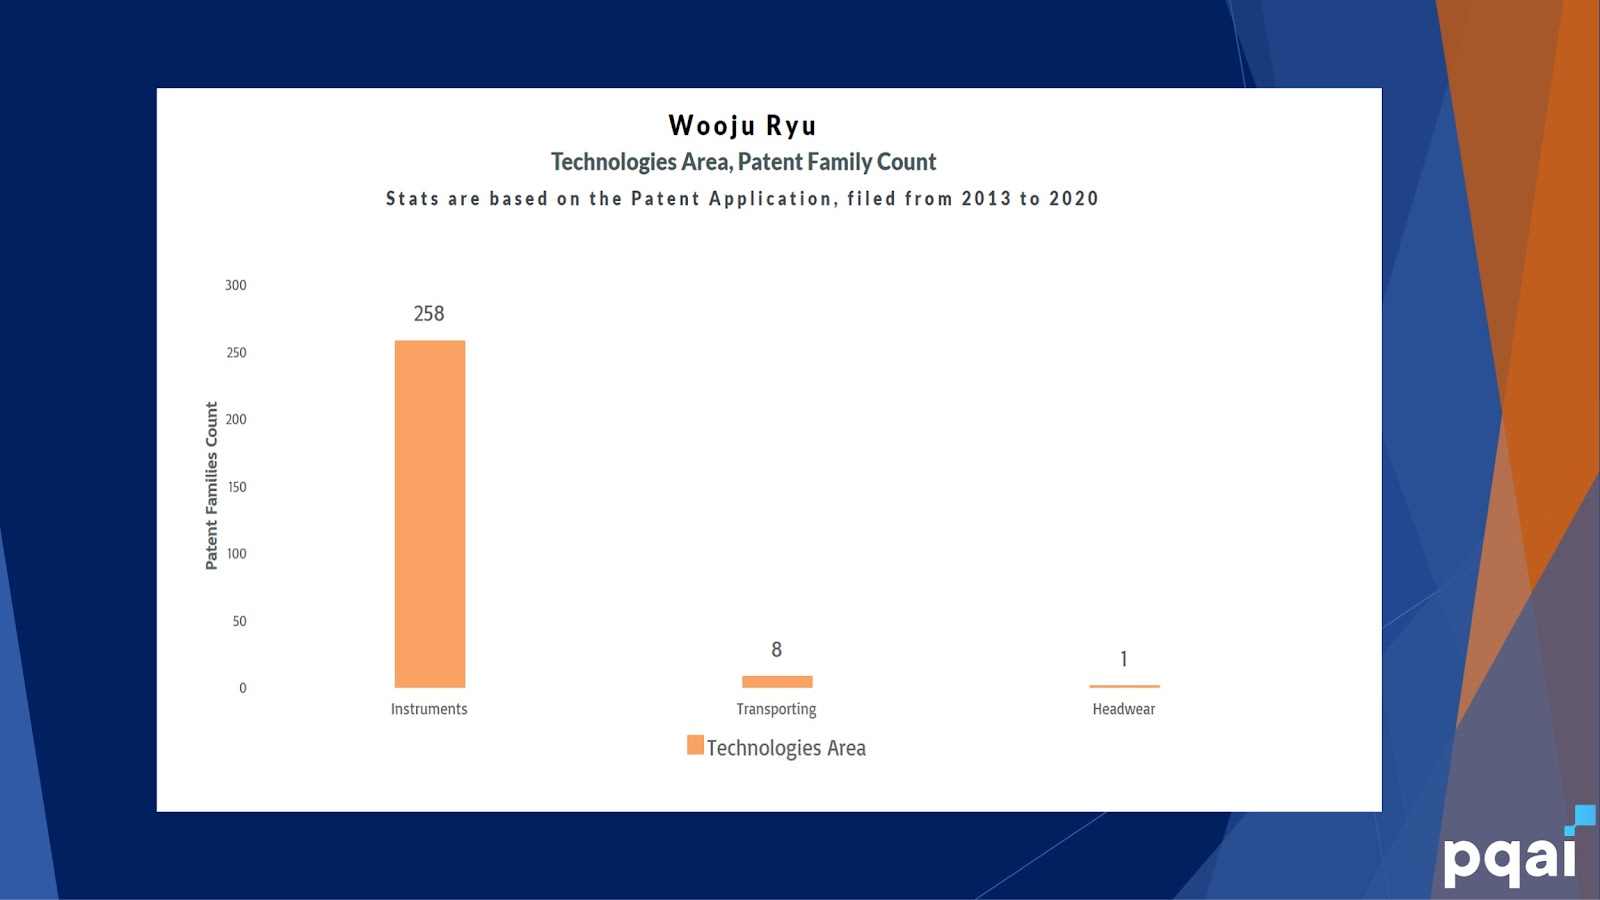 Wooju Ryu - Technology wise Patents Distribution